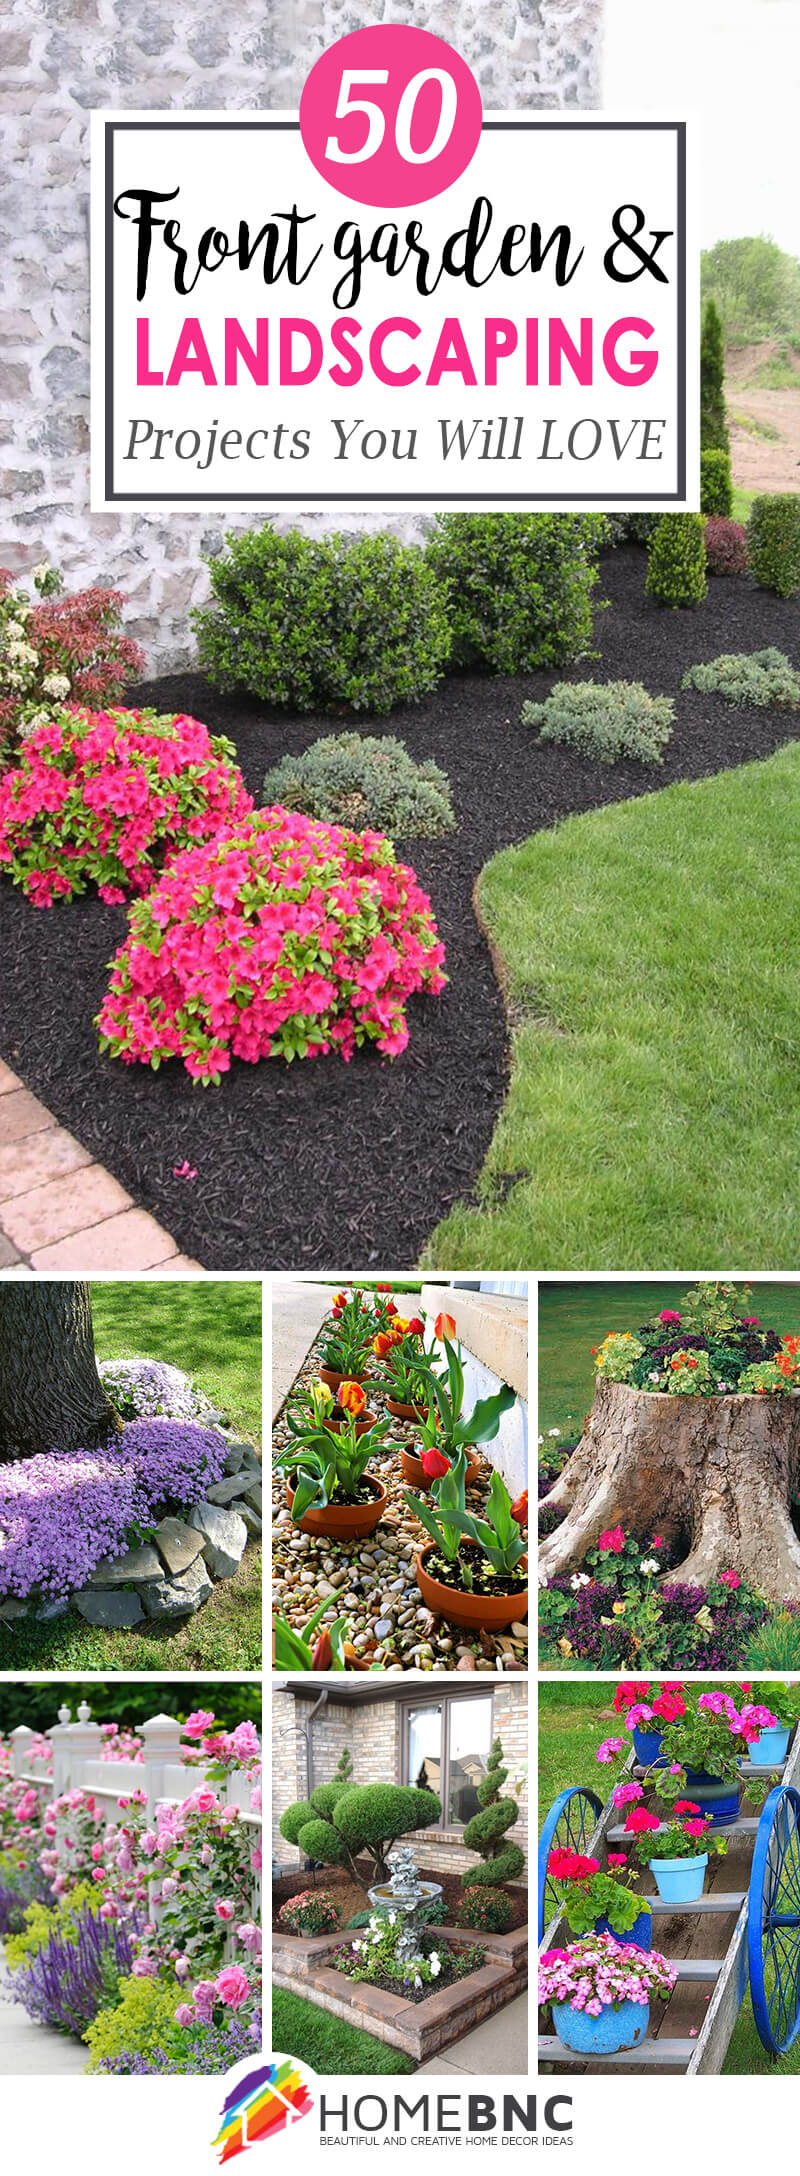 Garden And Landscaping 50 best front yard landscaping ideas and garden designs for 2018 50 creative front yard landscaping ideas and garden designs for 2018 workwithnaturefo